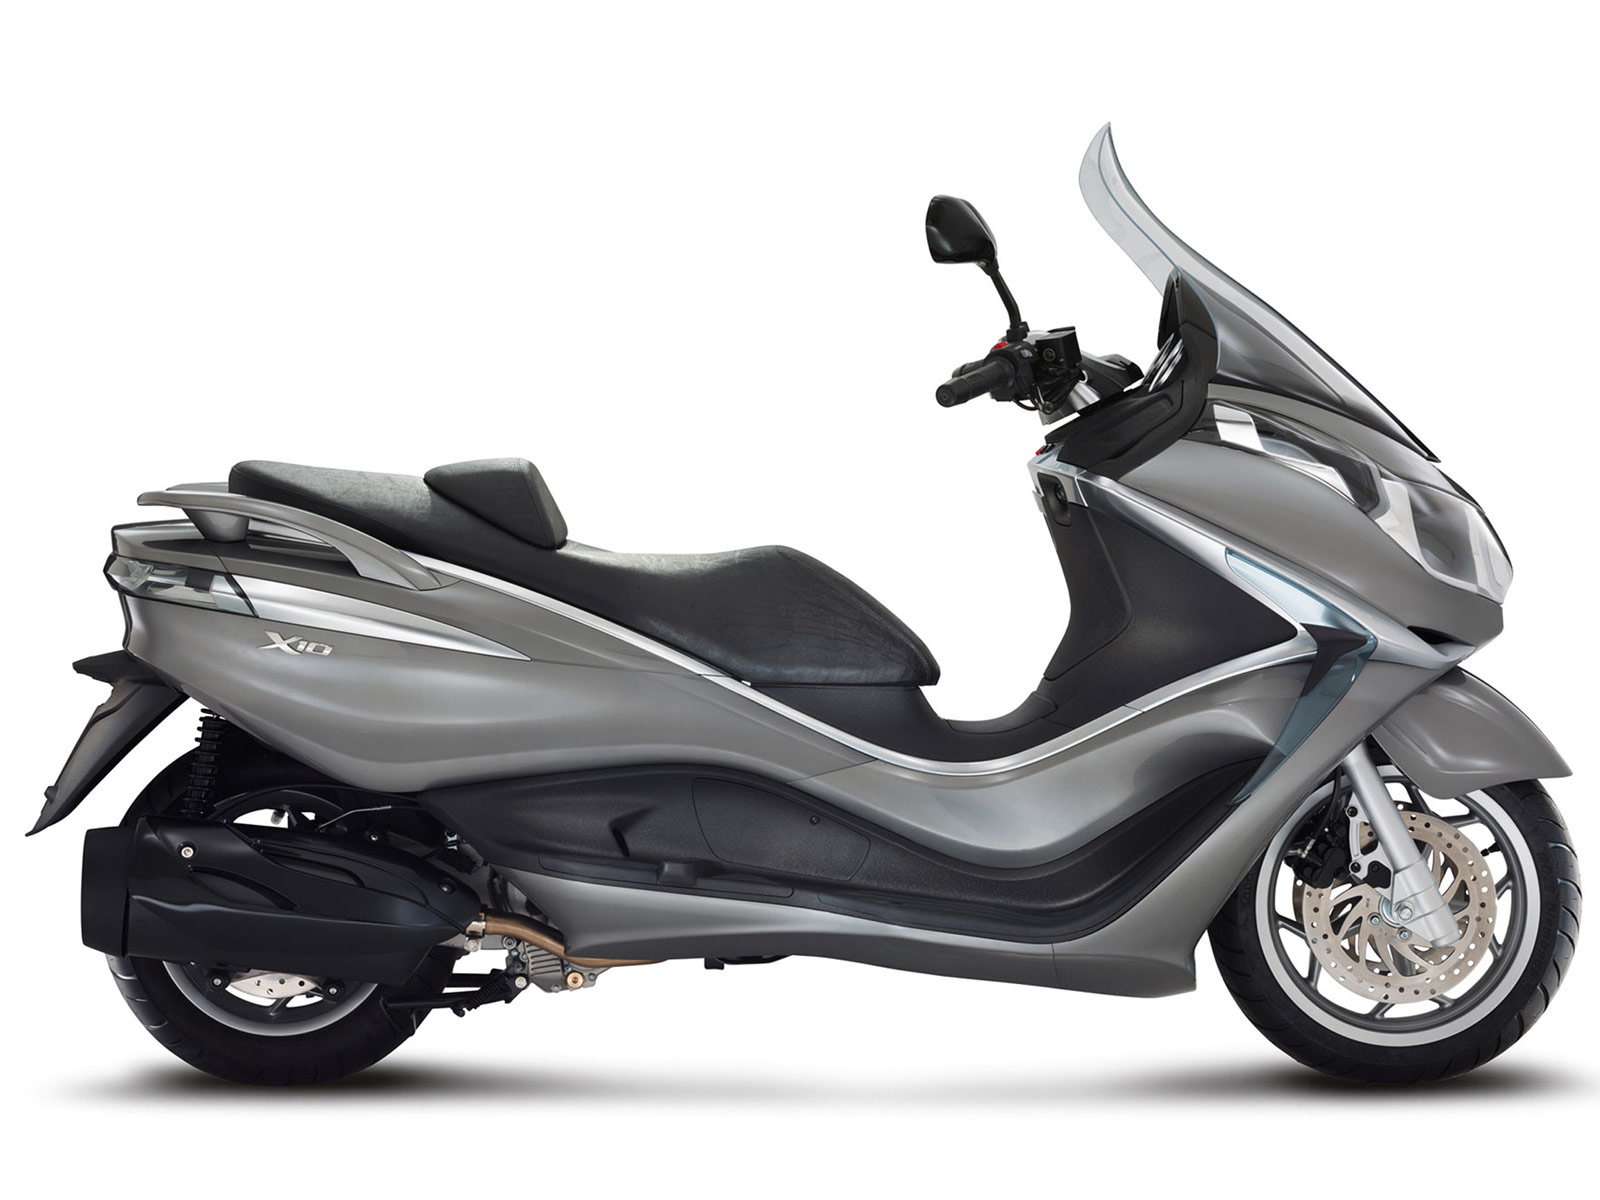 2013 scooter pictures piaggio x10 350 insurance information. Black Bedroom Furniture Sets. Home Design Ideas